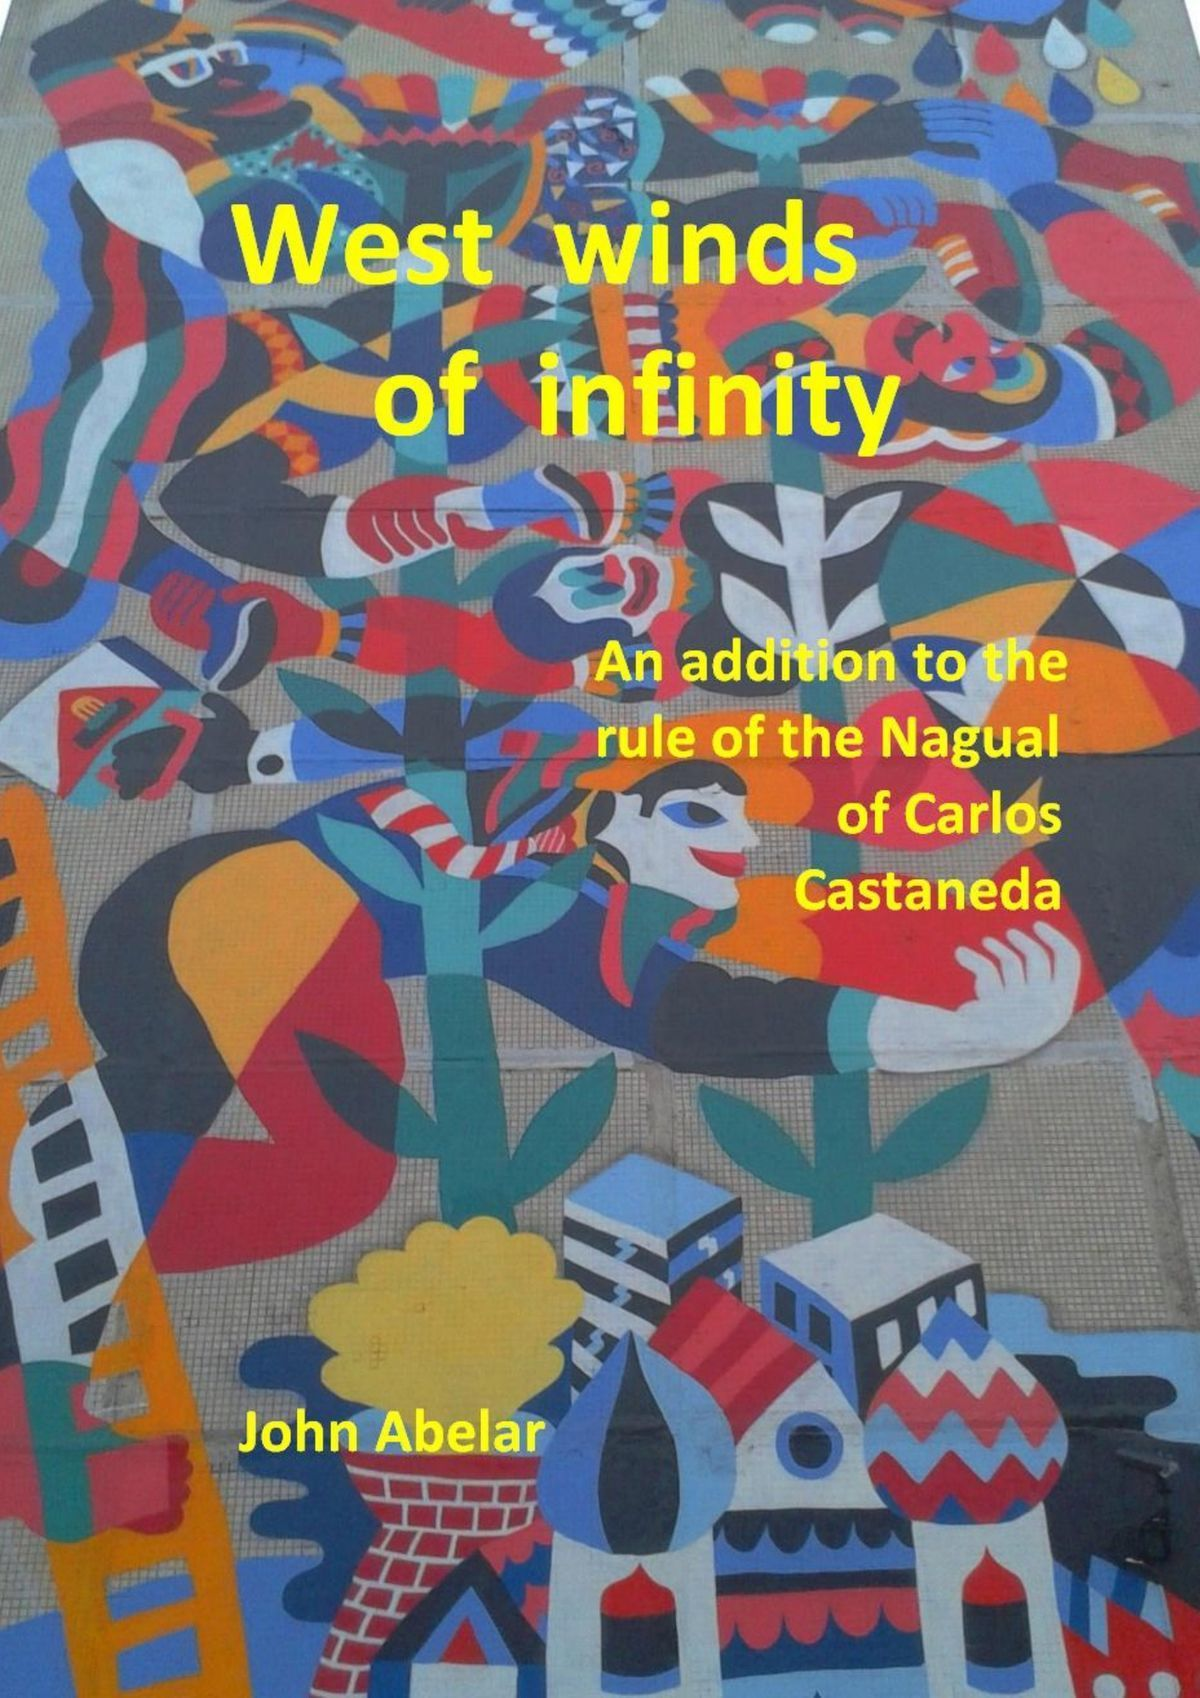 John Abelar West winds of infinity. An addition to the rule of the Nagual of Carlos Castaneda